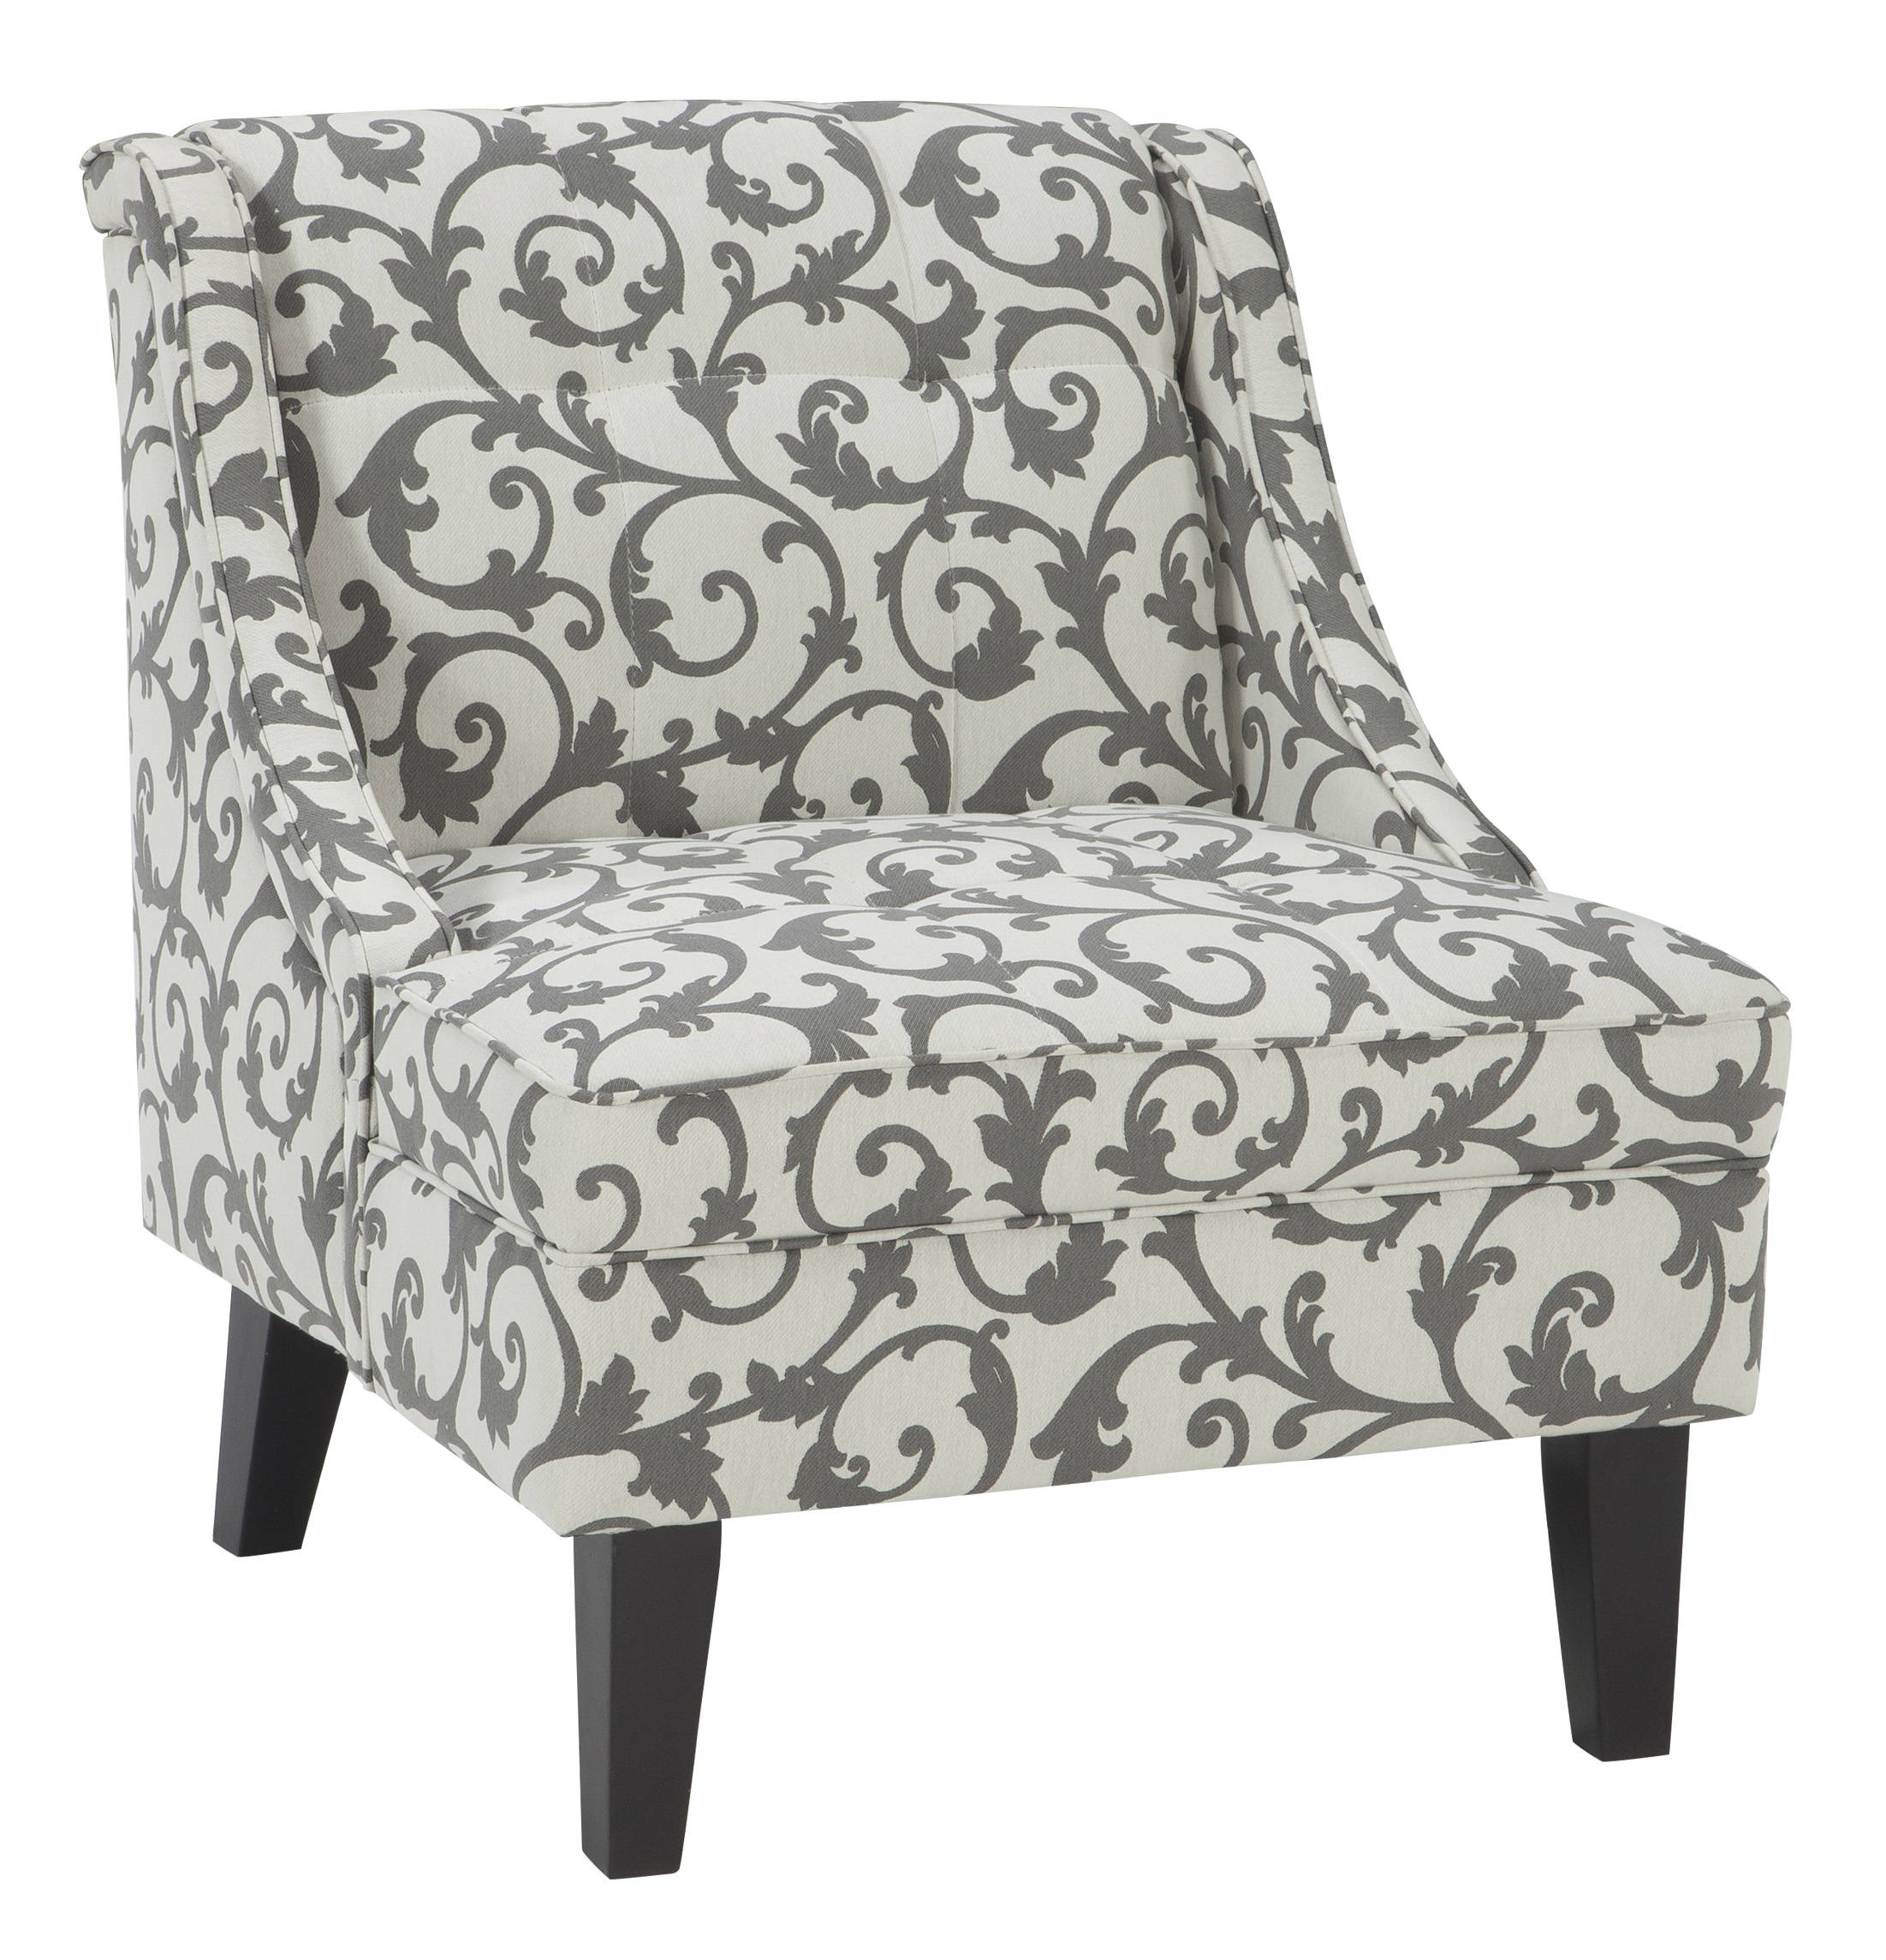 Fabulous Ashley Furniture Kexlor Gray Accent Chair Caraccident5 Cool Chair Designs And Ideas Caraccident5Info